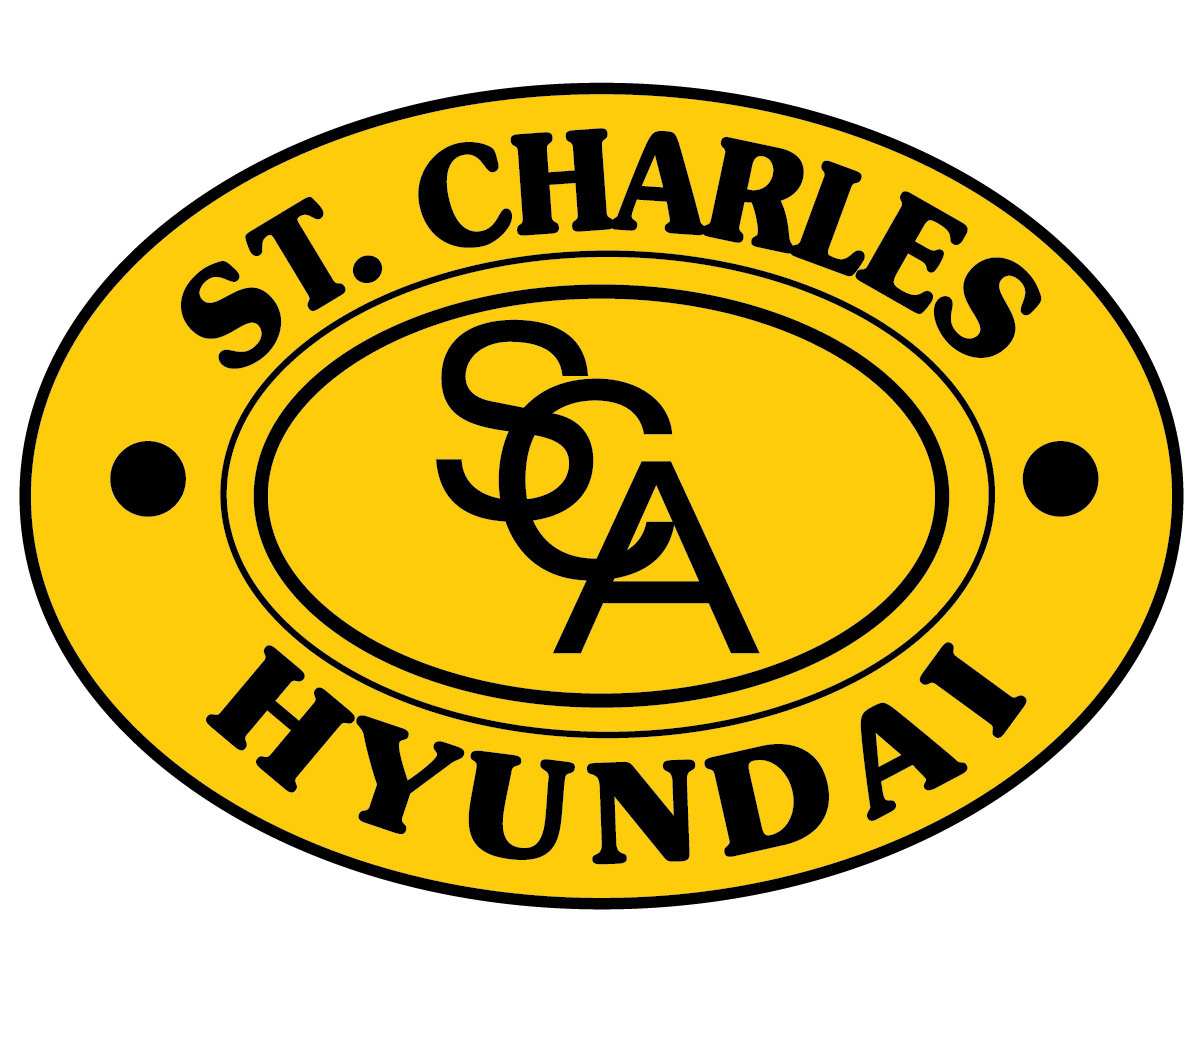 St Charles Used Car Inventory Search Used Car Dealers